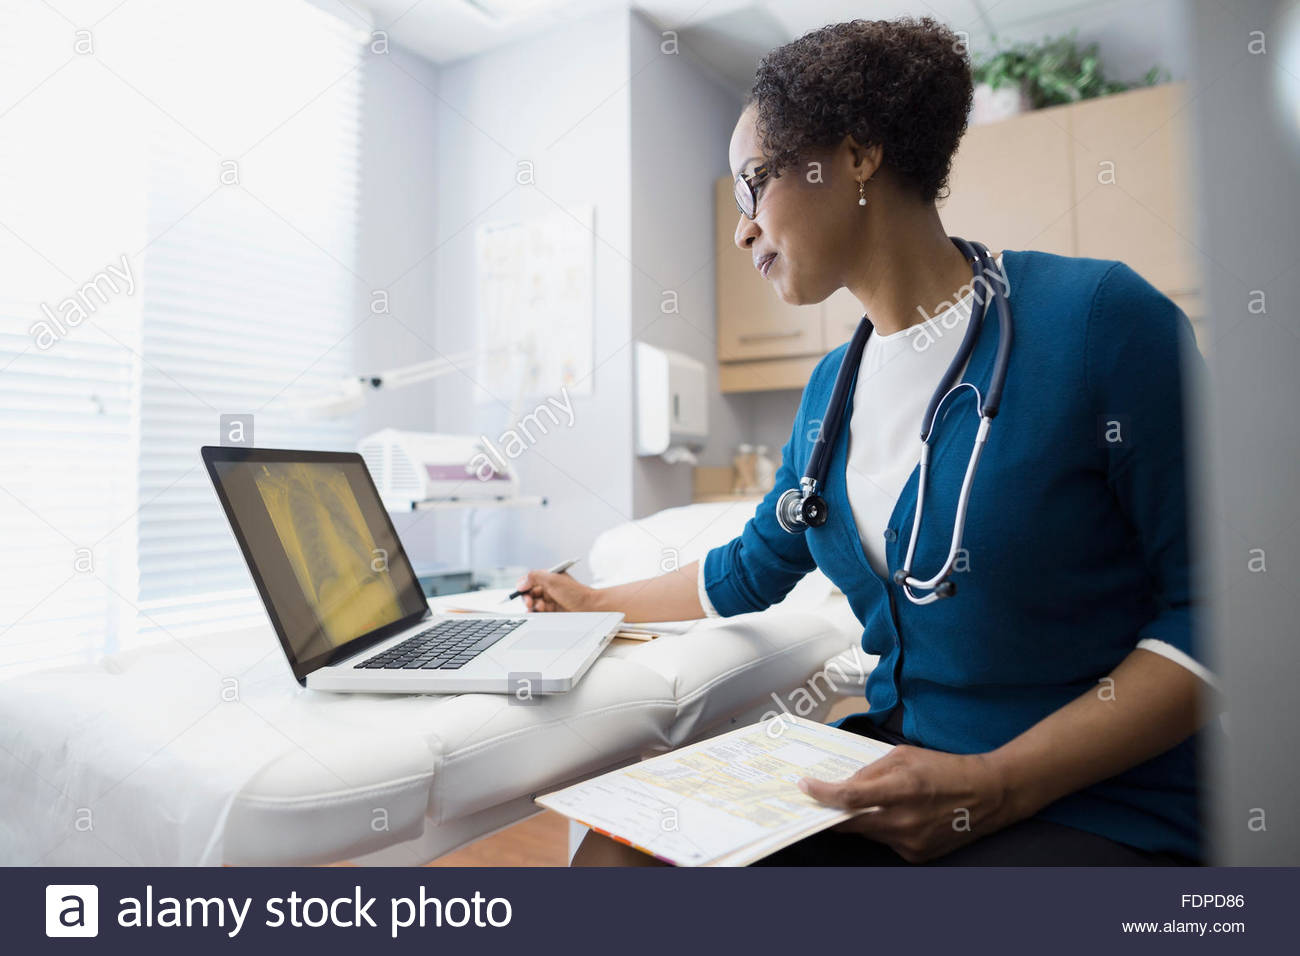 Doctor working at laptop in examination room - Stock Image